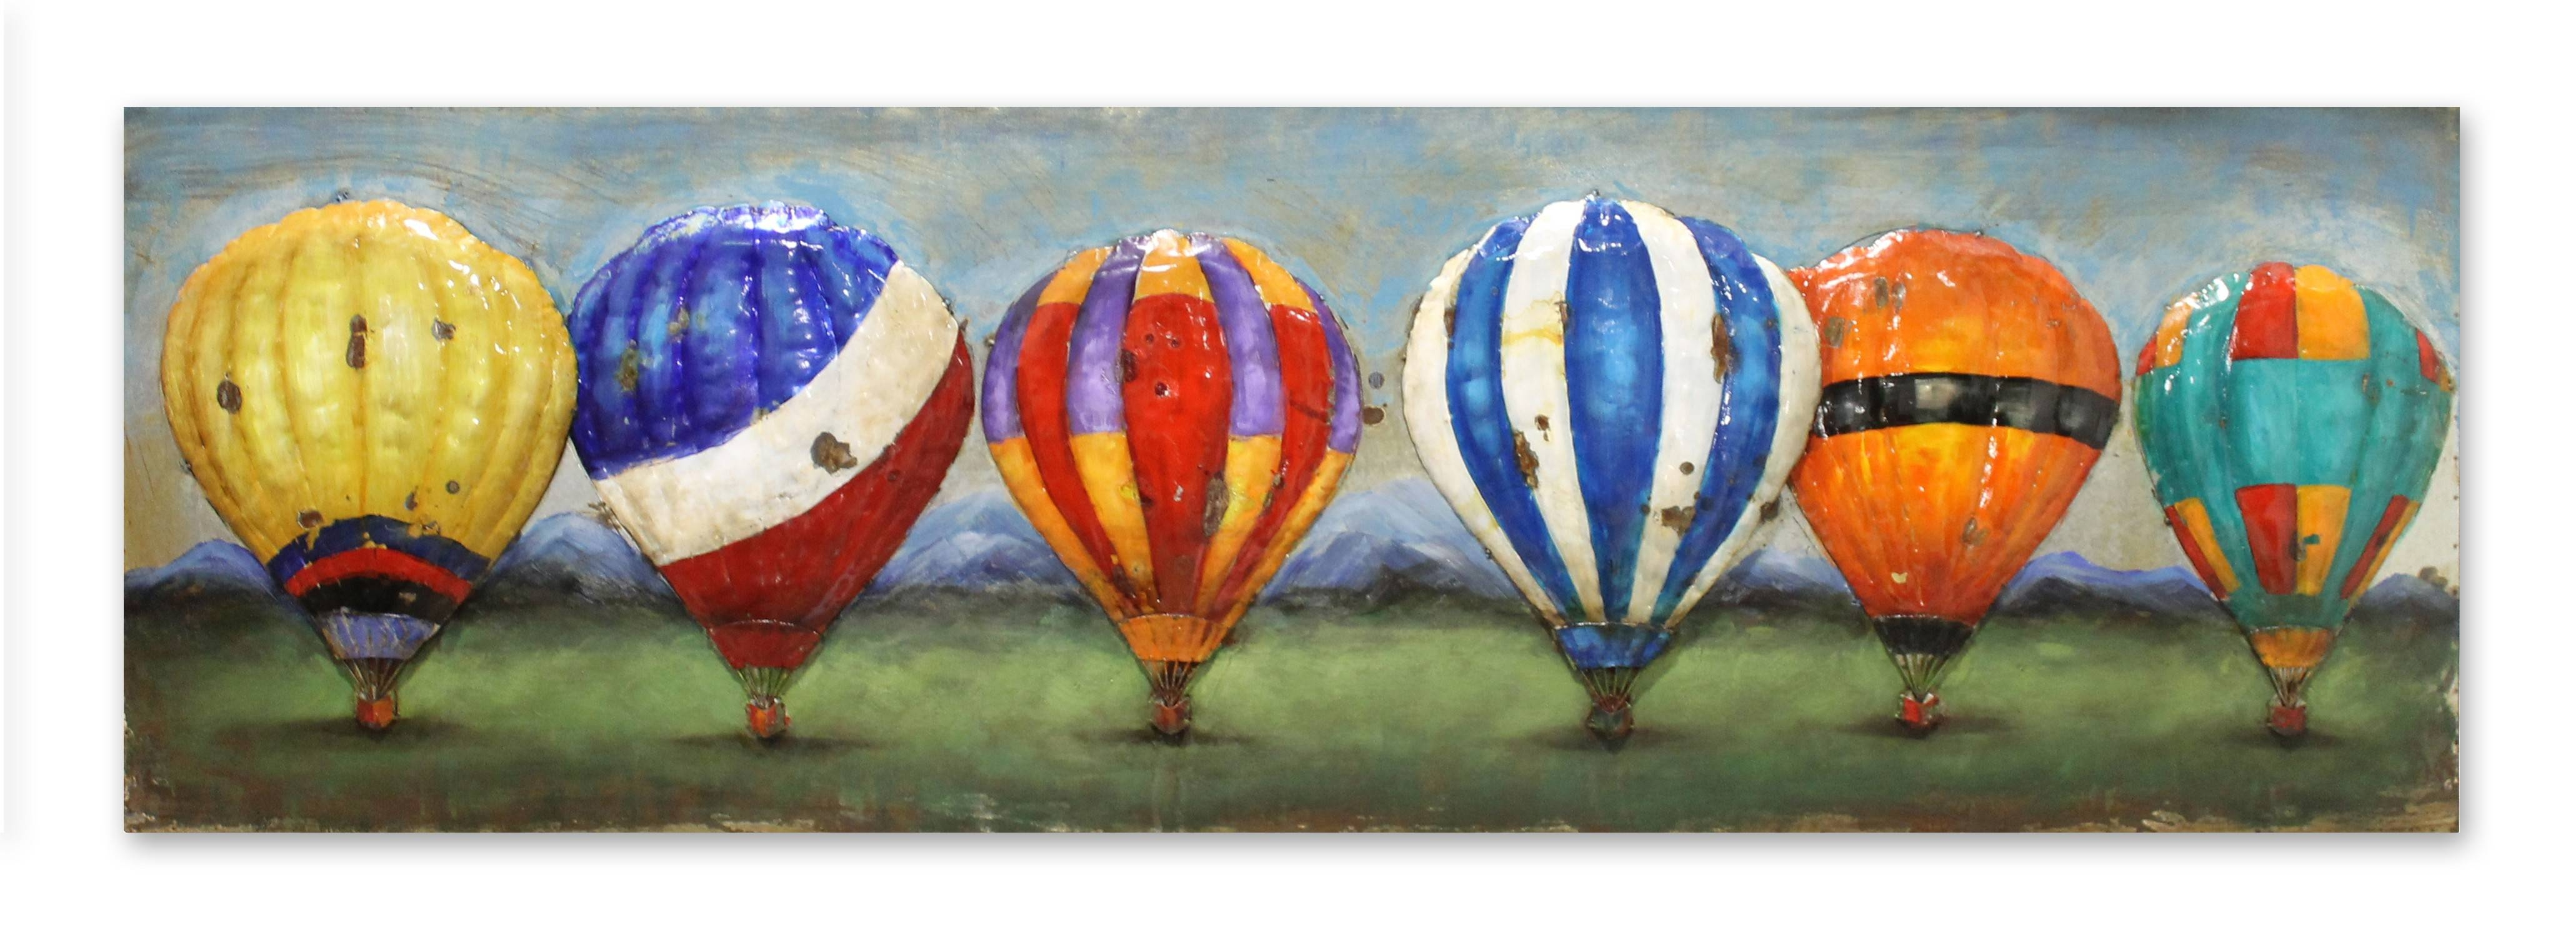 Rainbow' Hot Air Balloons 3D Metal Wall Art – Home & Interiors With Regard To Newest Air Balloon 3D Wall Art (Gallery 11 of 20)